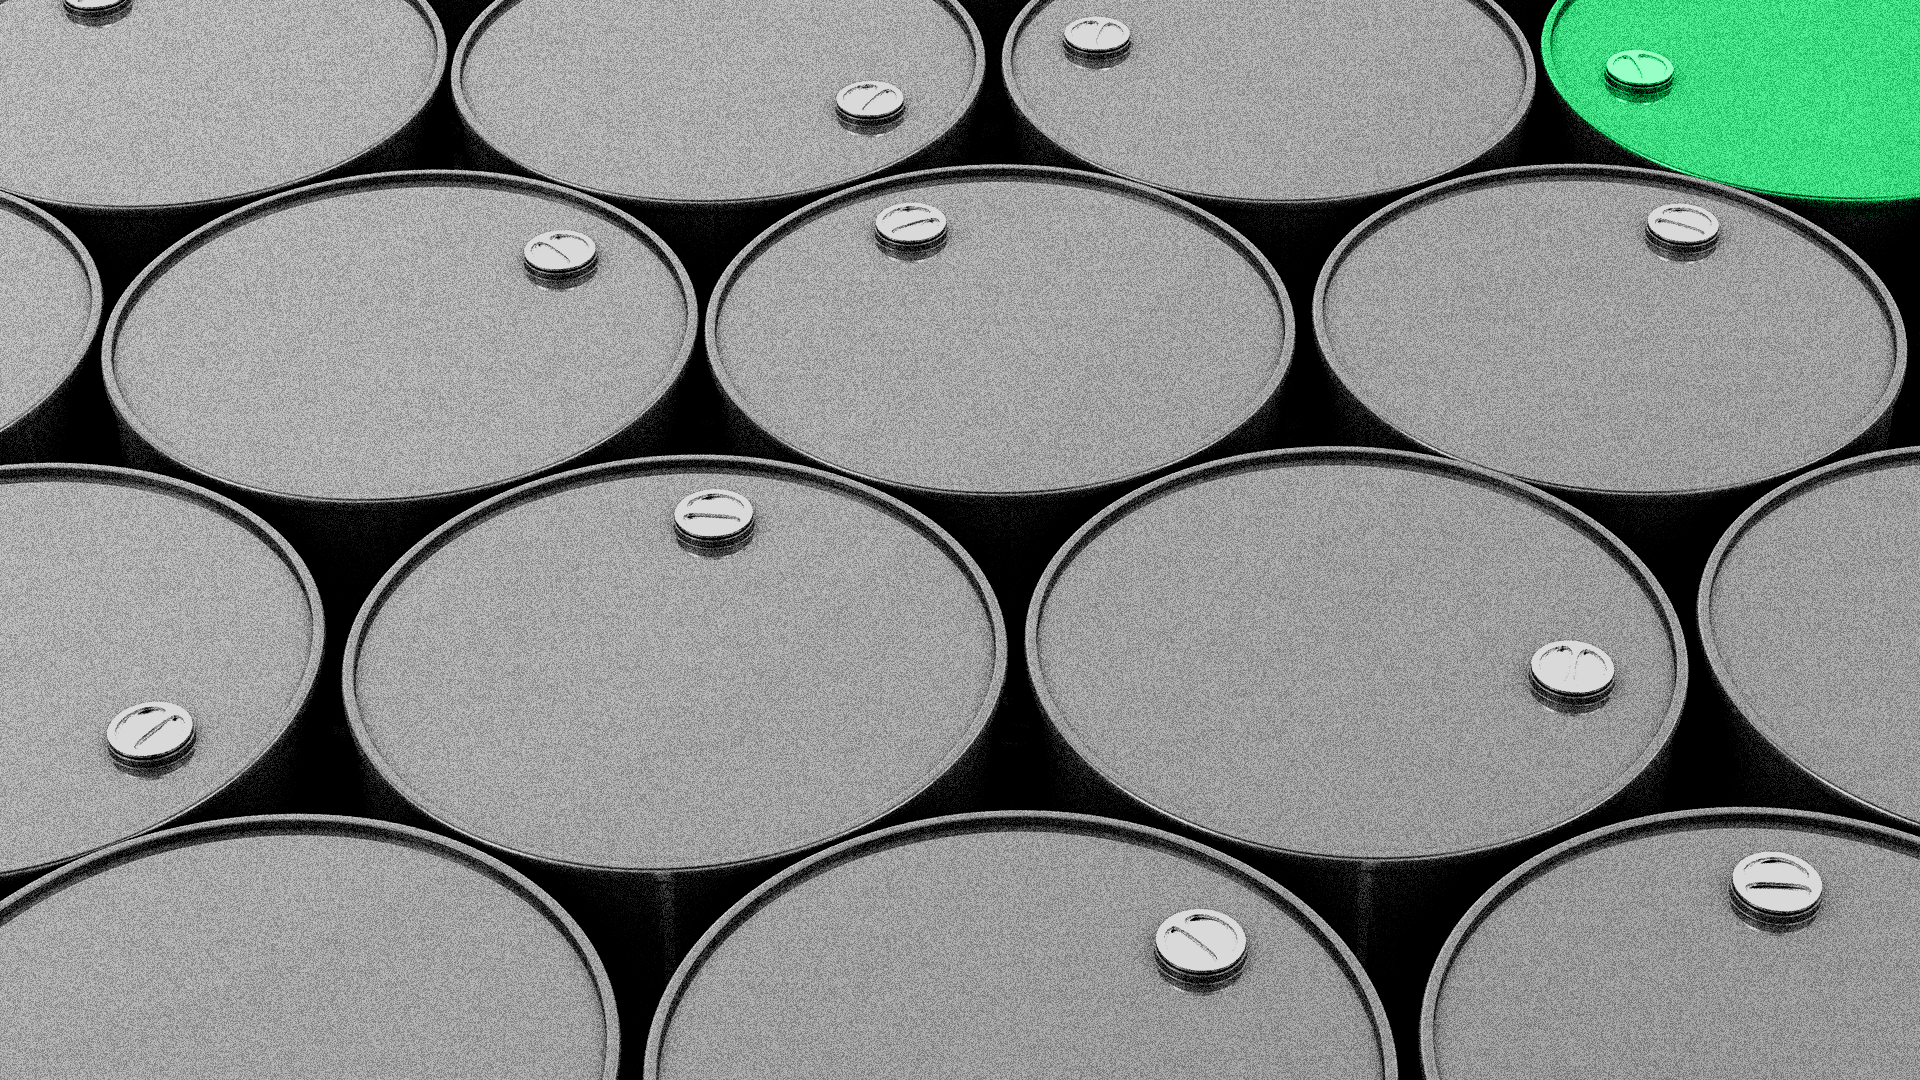 Illustration of a collection of oil barrels, with one green one.